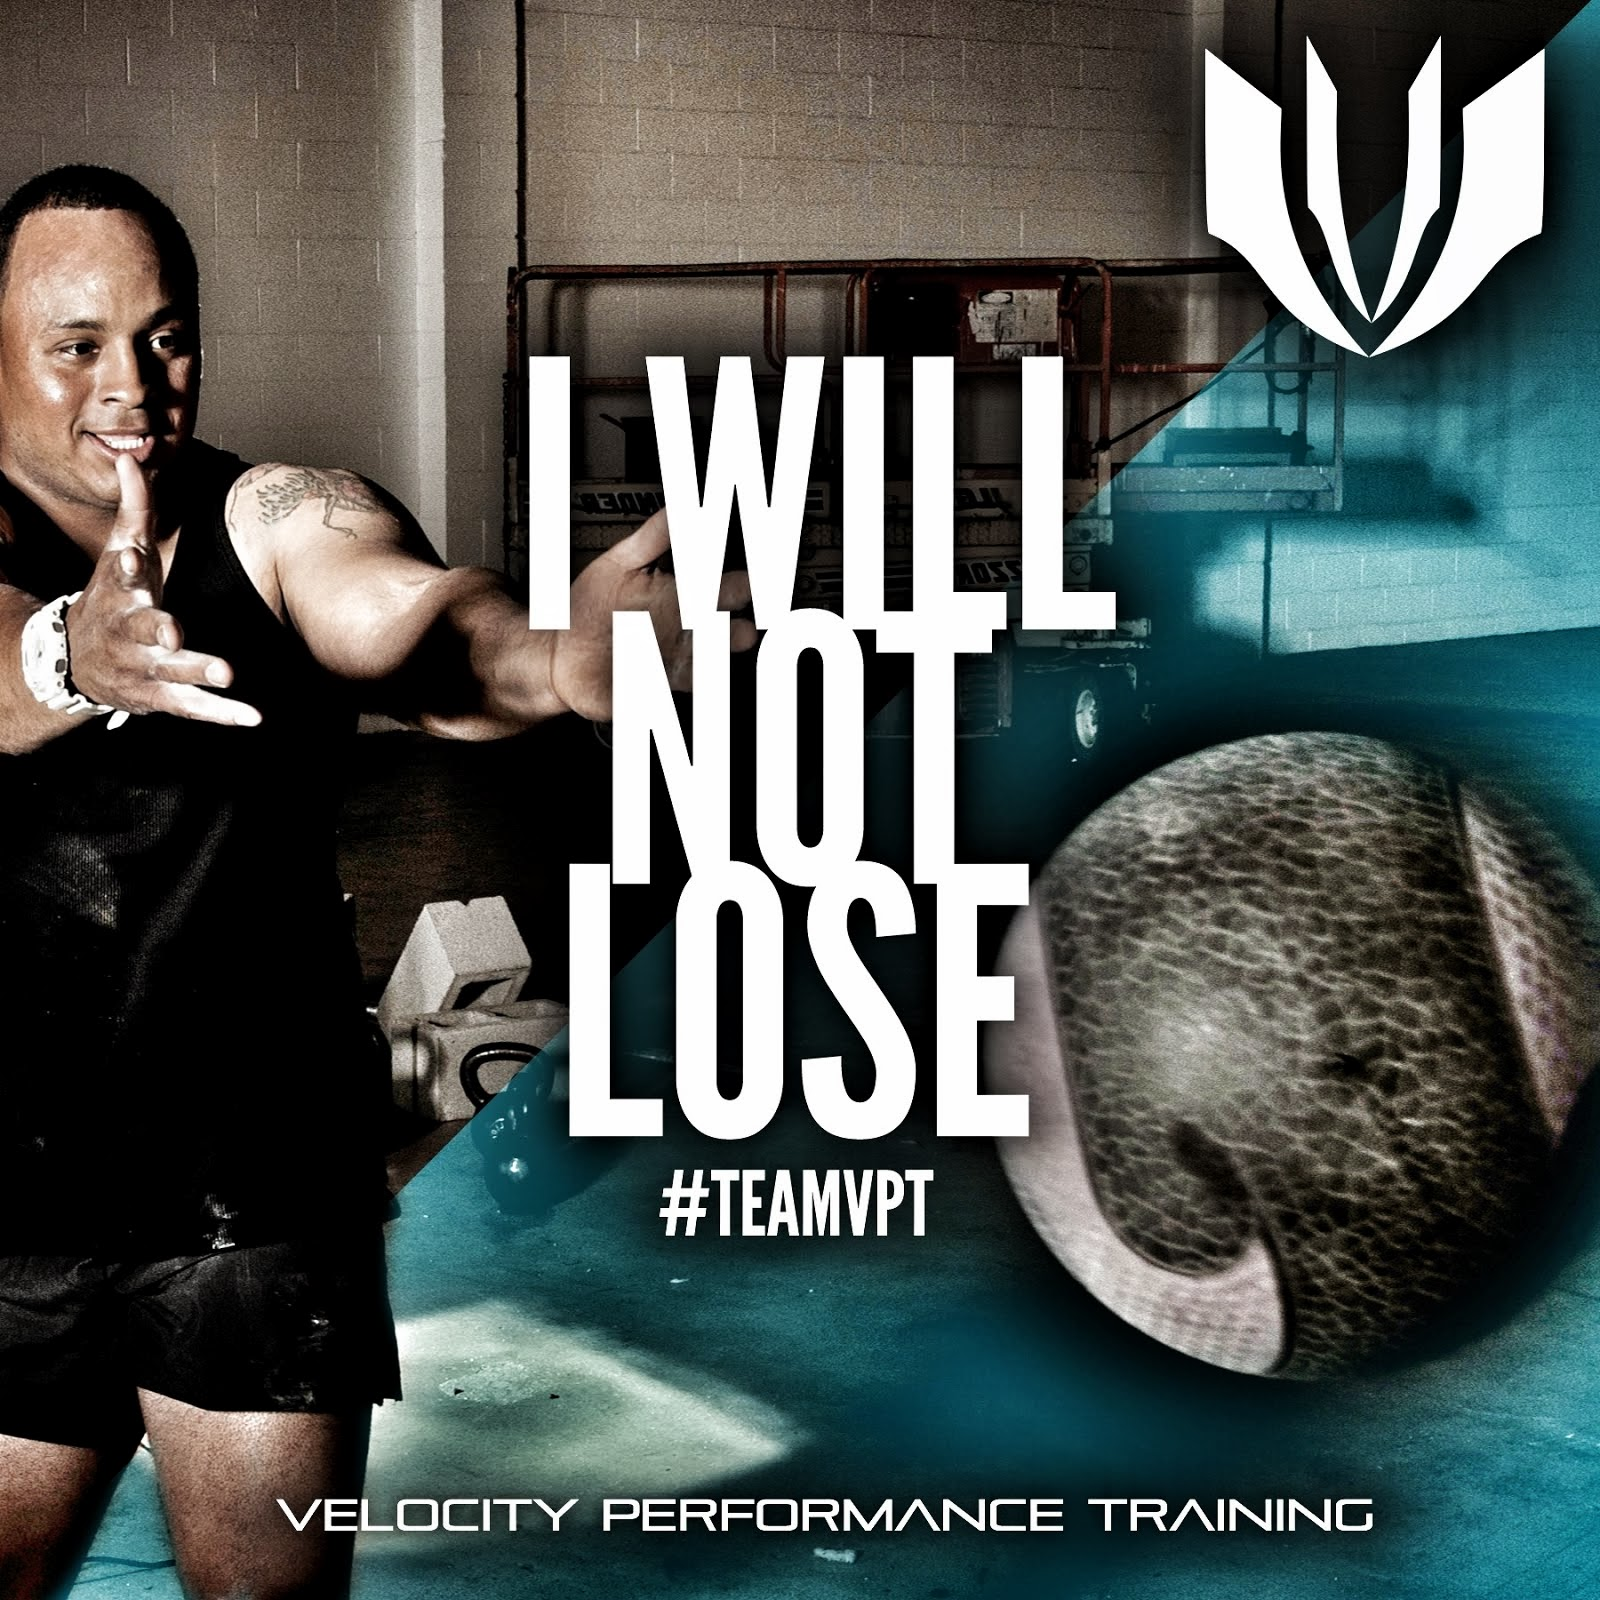 VELOCITY PERFORMANCE TRAINING